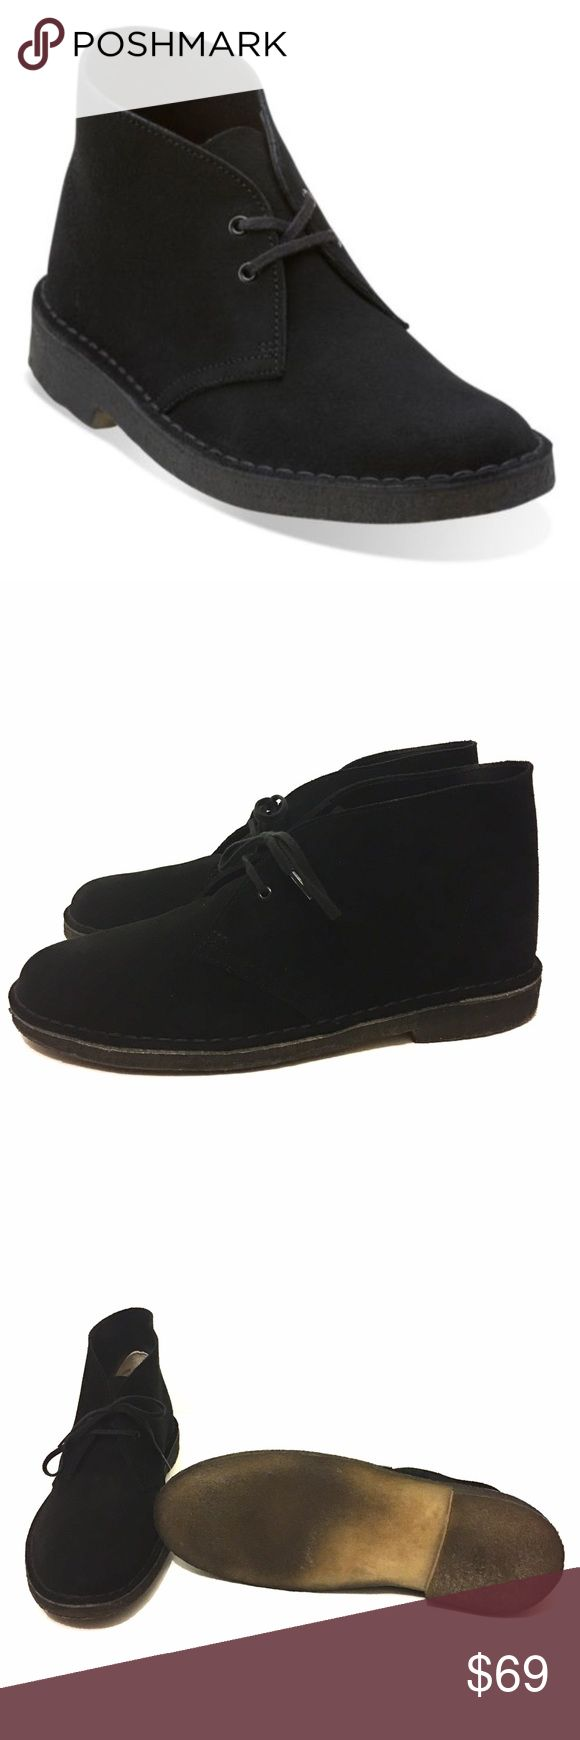 Clarks Originals Desert Boots Women's Black sz 11 Style # 73898 - Women's US 11 M - Solid Black Suede - Lightly worn a couple of times - no stains, no foot odor, no foot prints. Excellent condition. Clarks Shoes Ankle Boots & Booties